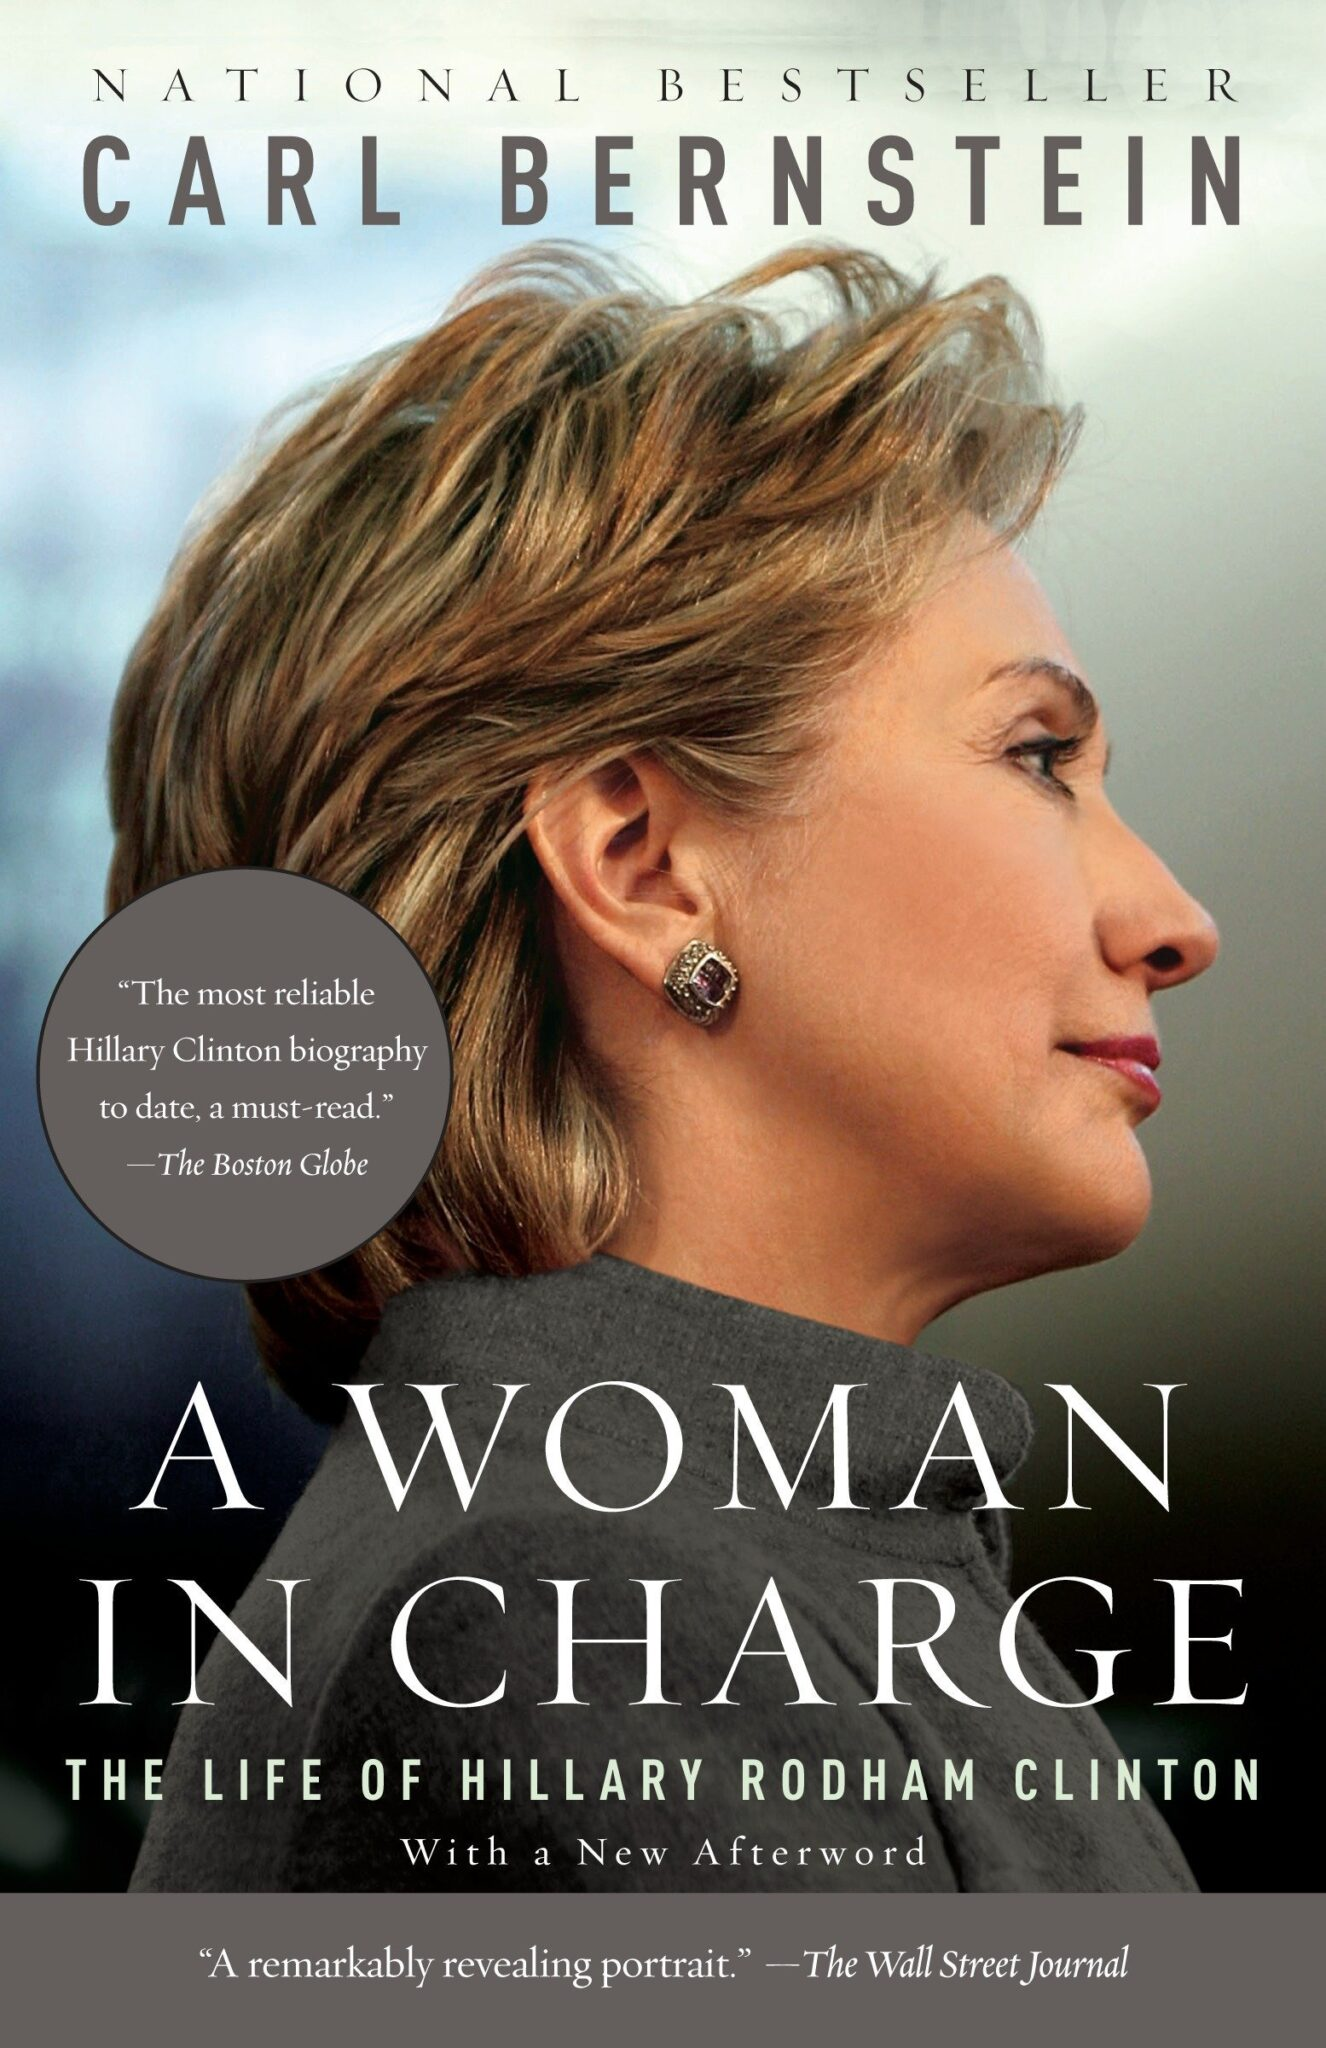 A WOMAN IN CHARGE: The Life of Hillary Rodham Clinton.